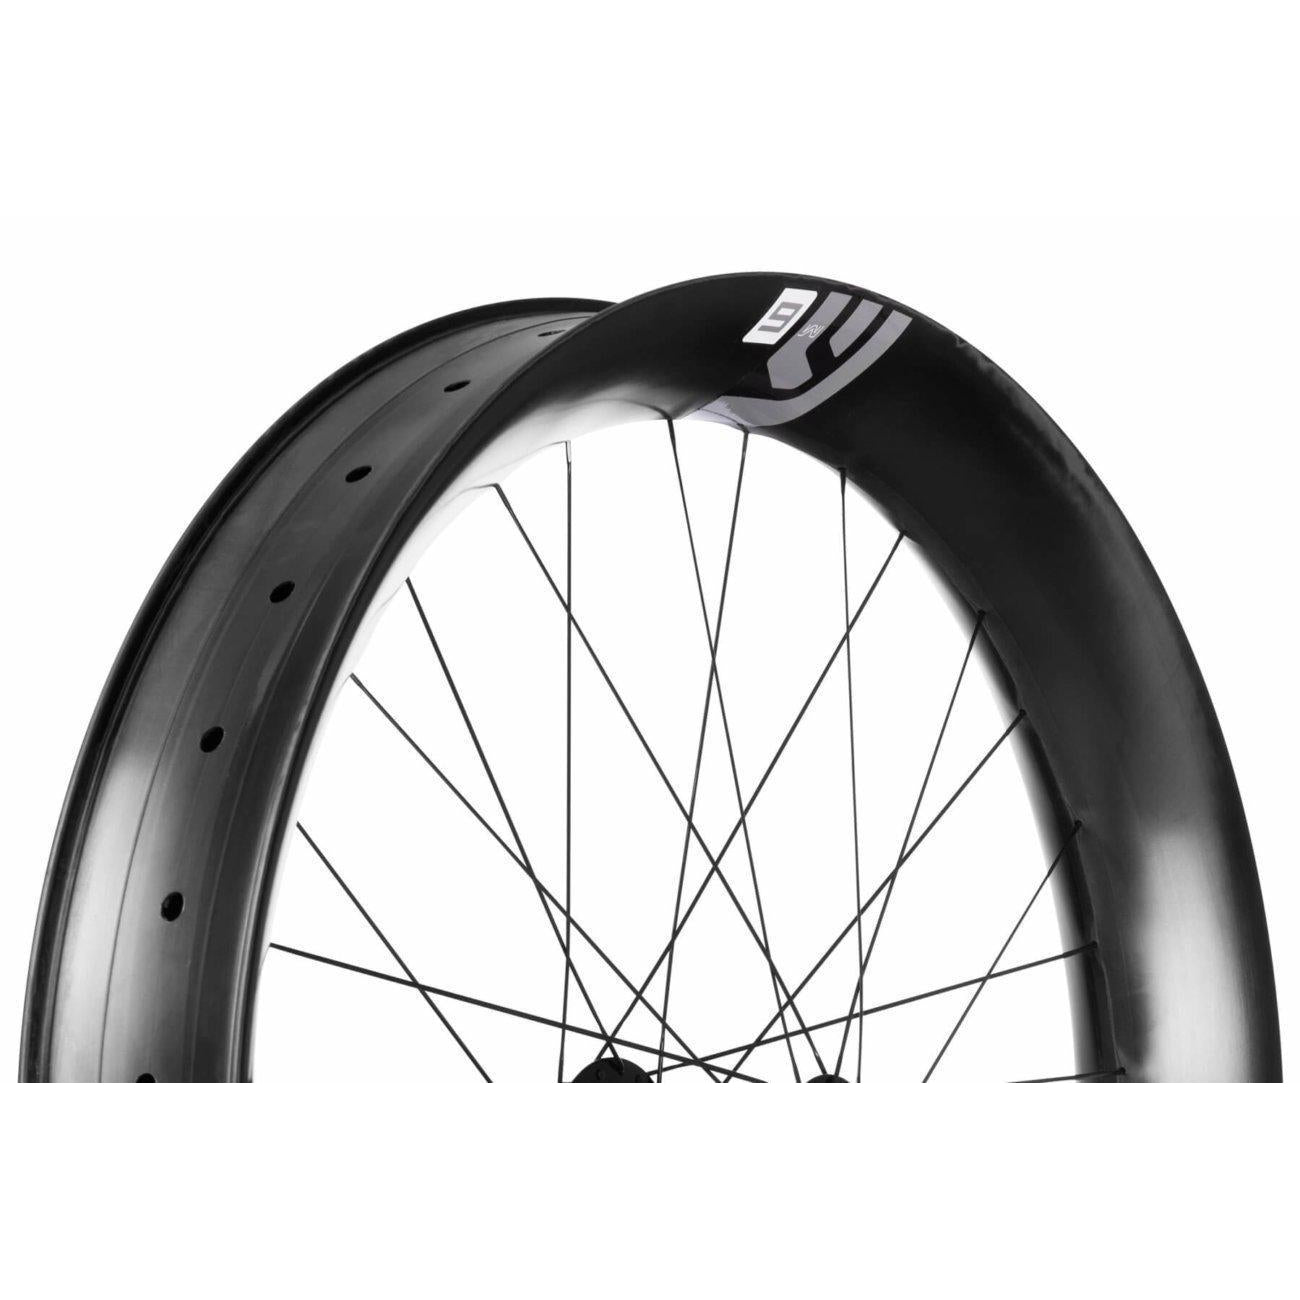 ENVE M685 Fat Bike Rim - Disc Brake Tubeless Only